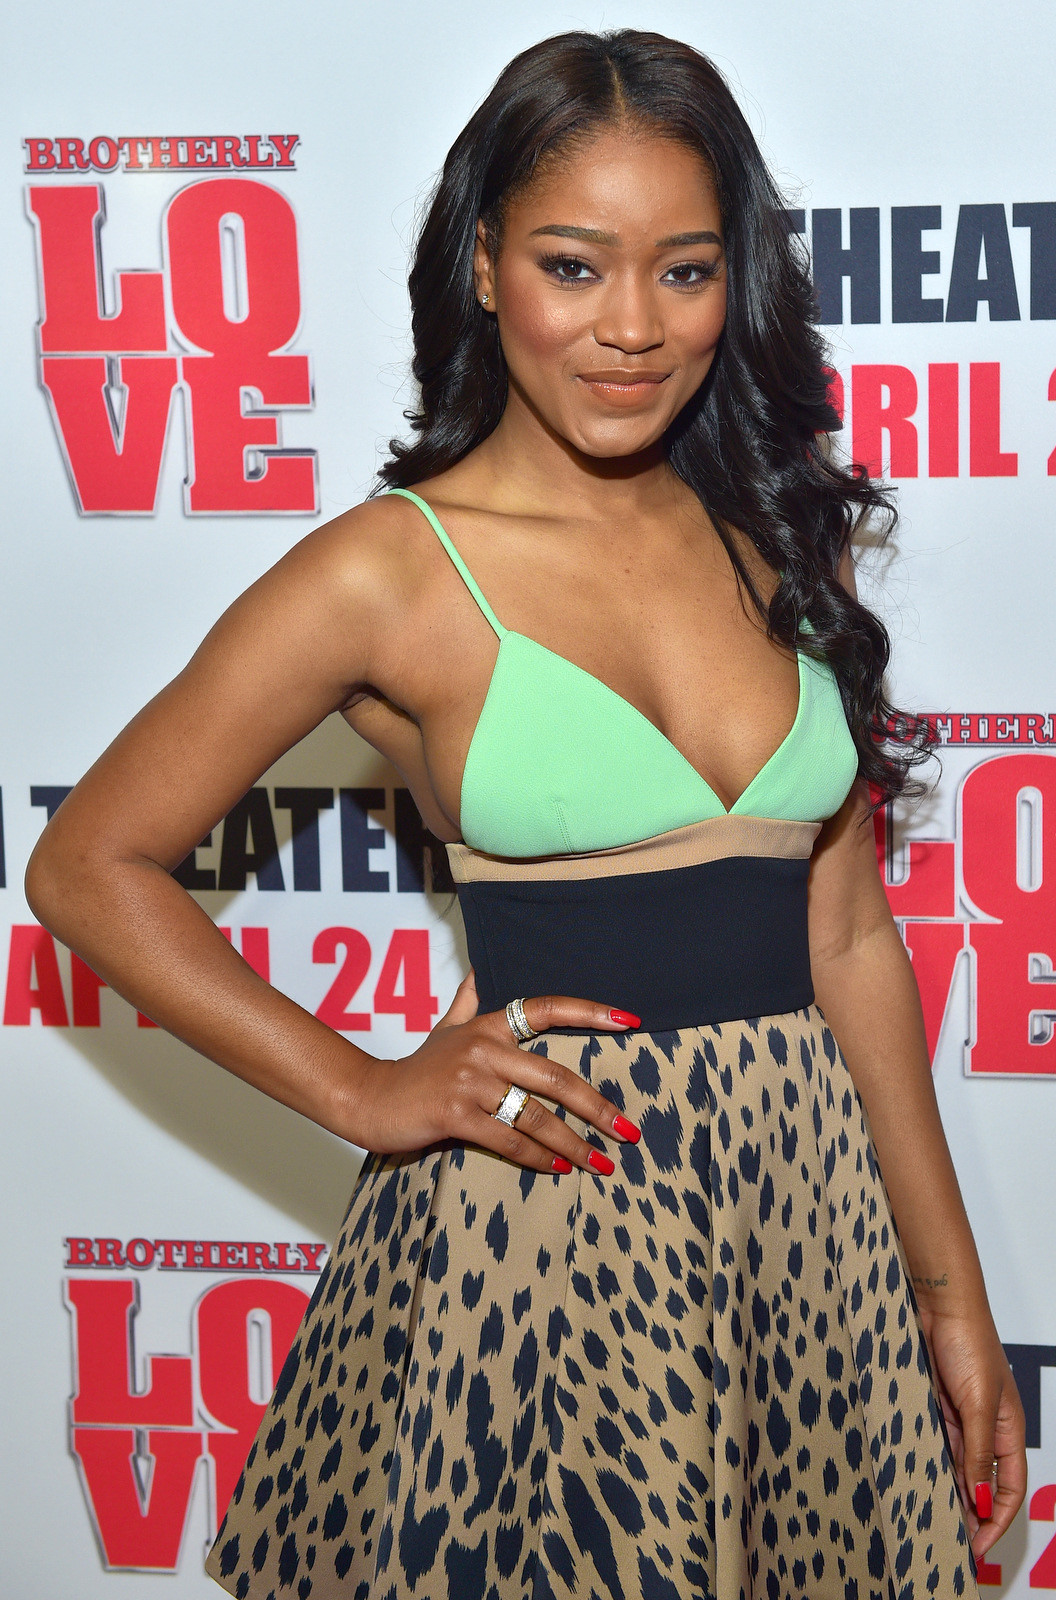 keke-palmer-in-fausto-puglisi-brotherly-love-atlanta-screening